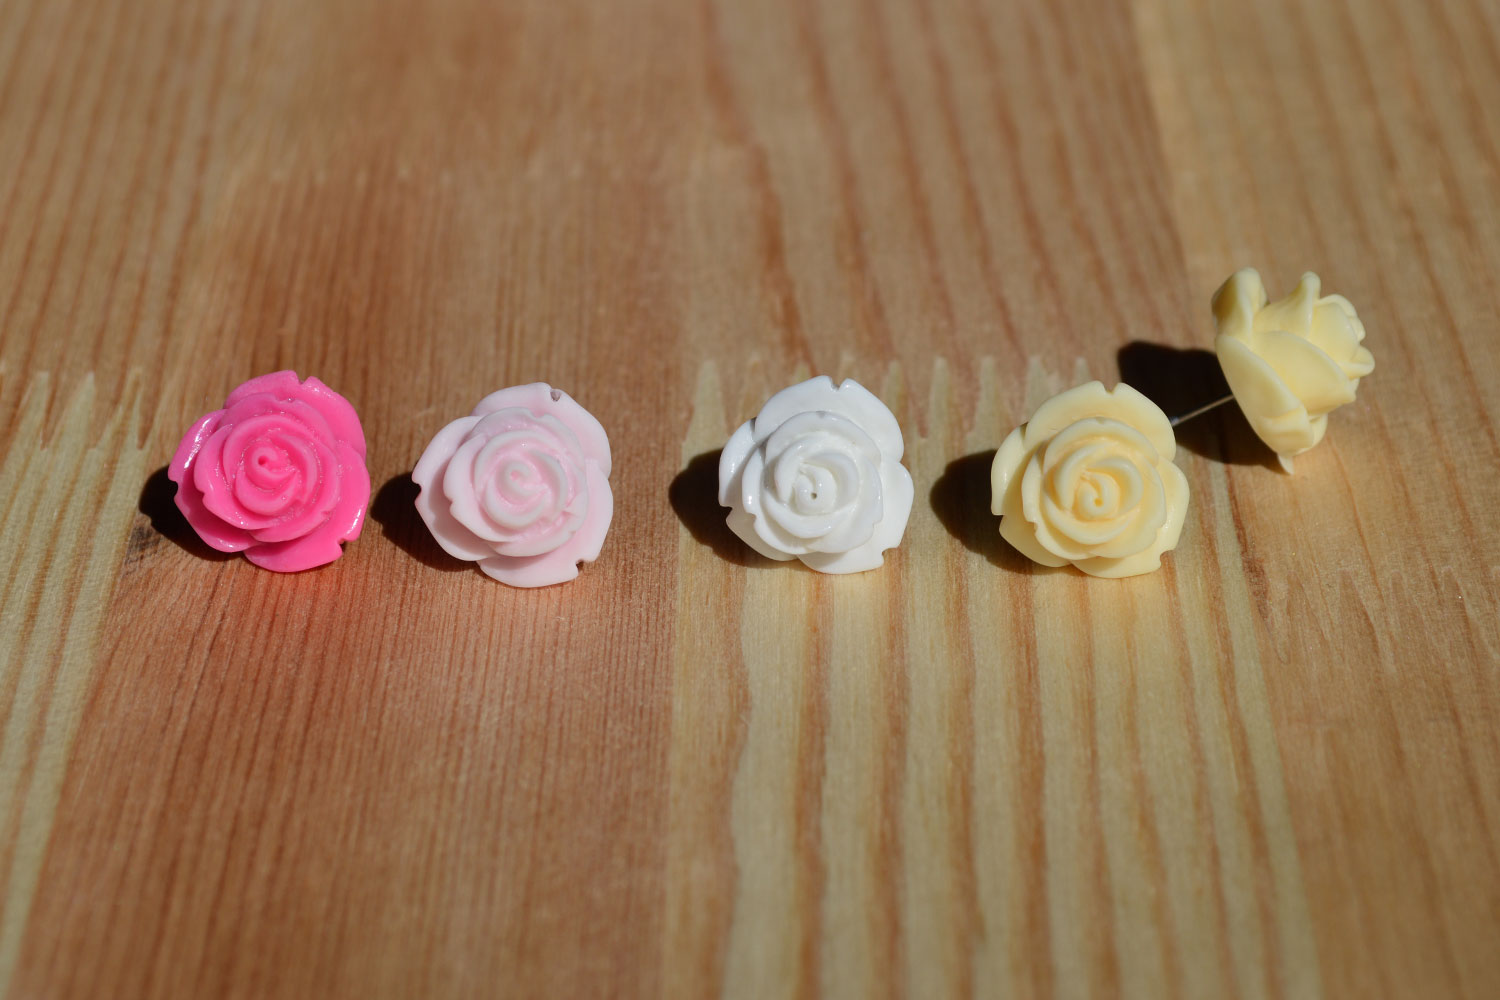 Medium-sized opening rose buds. Also available in red (my personal favourite!), cream or olive green.